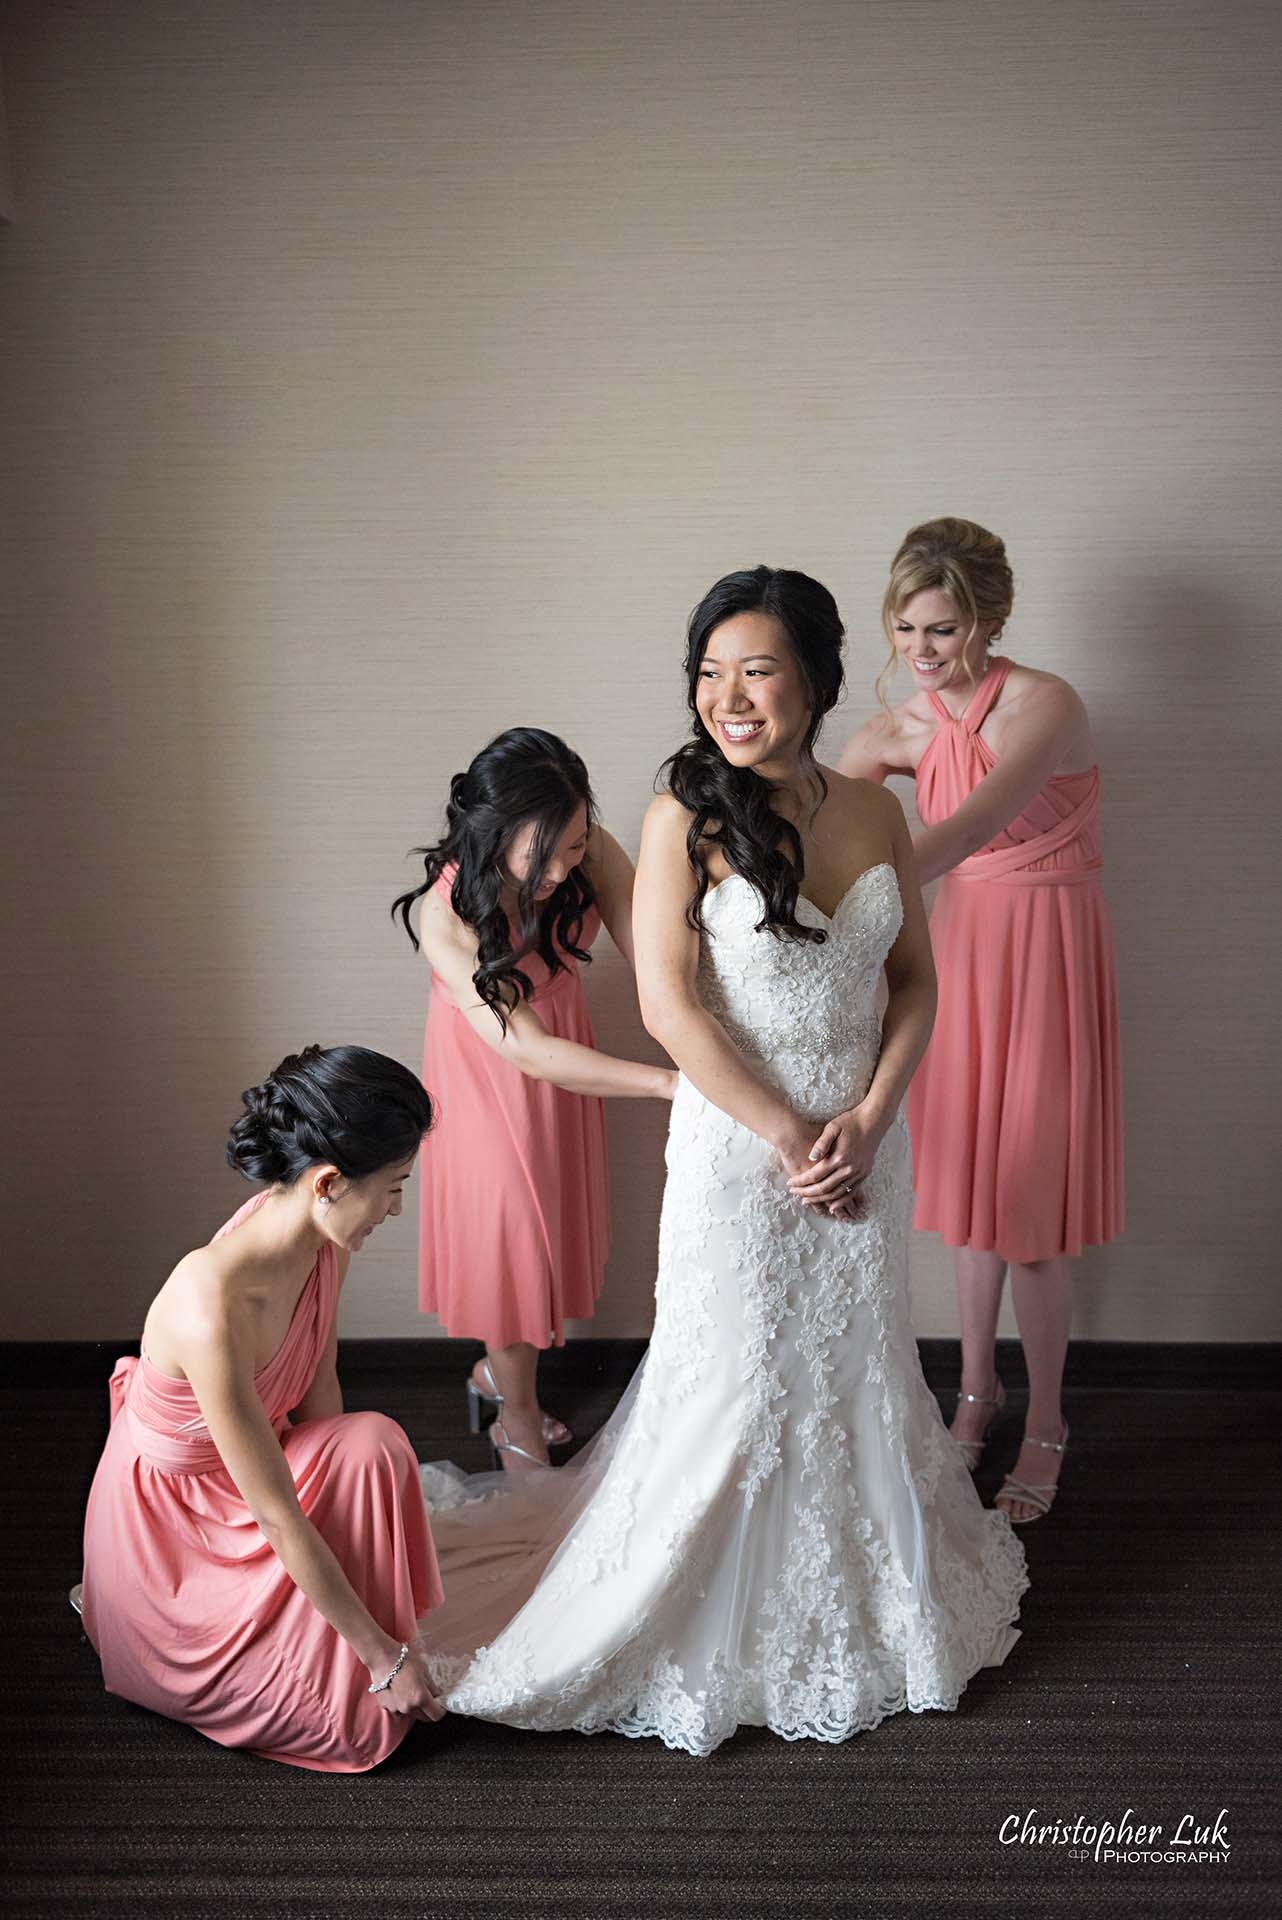 Christopher Luk Toronto Wedding Photographer Hotel Bride Getting Ready Details Maid of Honour Bridesmaids Candid Natural Photojournalistic Bridal Gown Dress Putting On